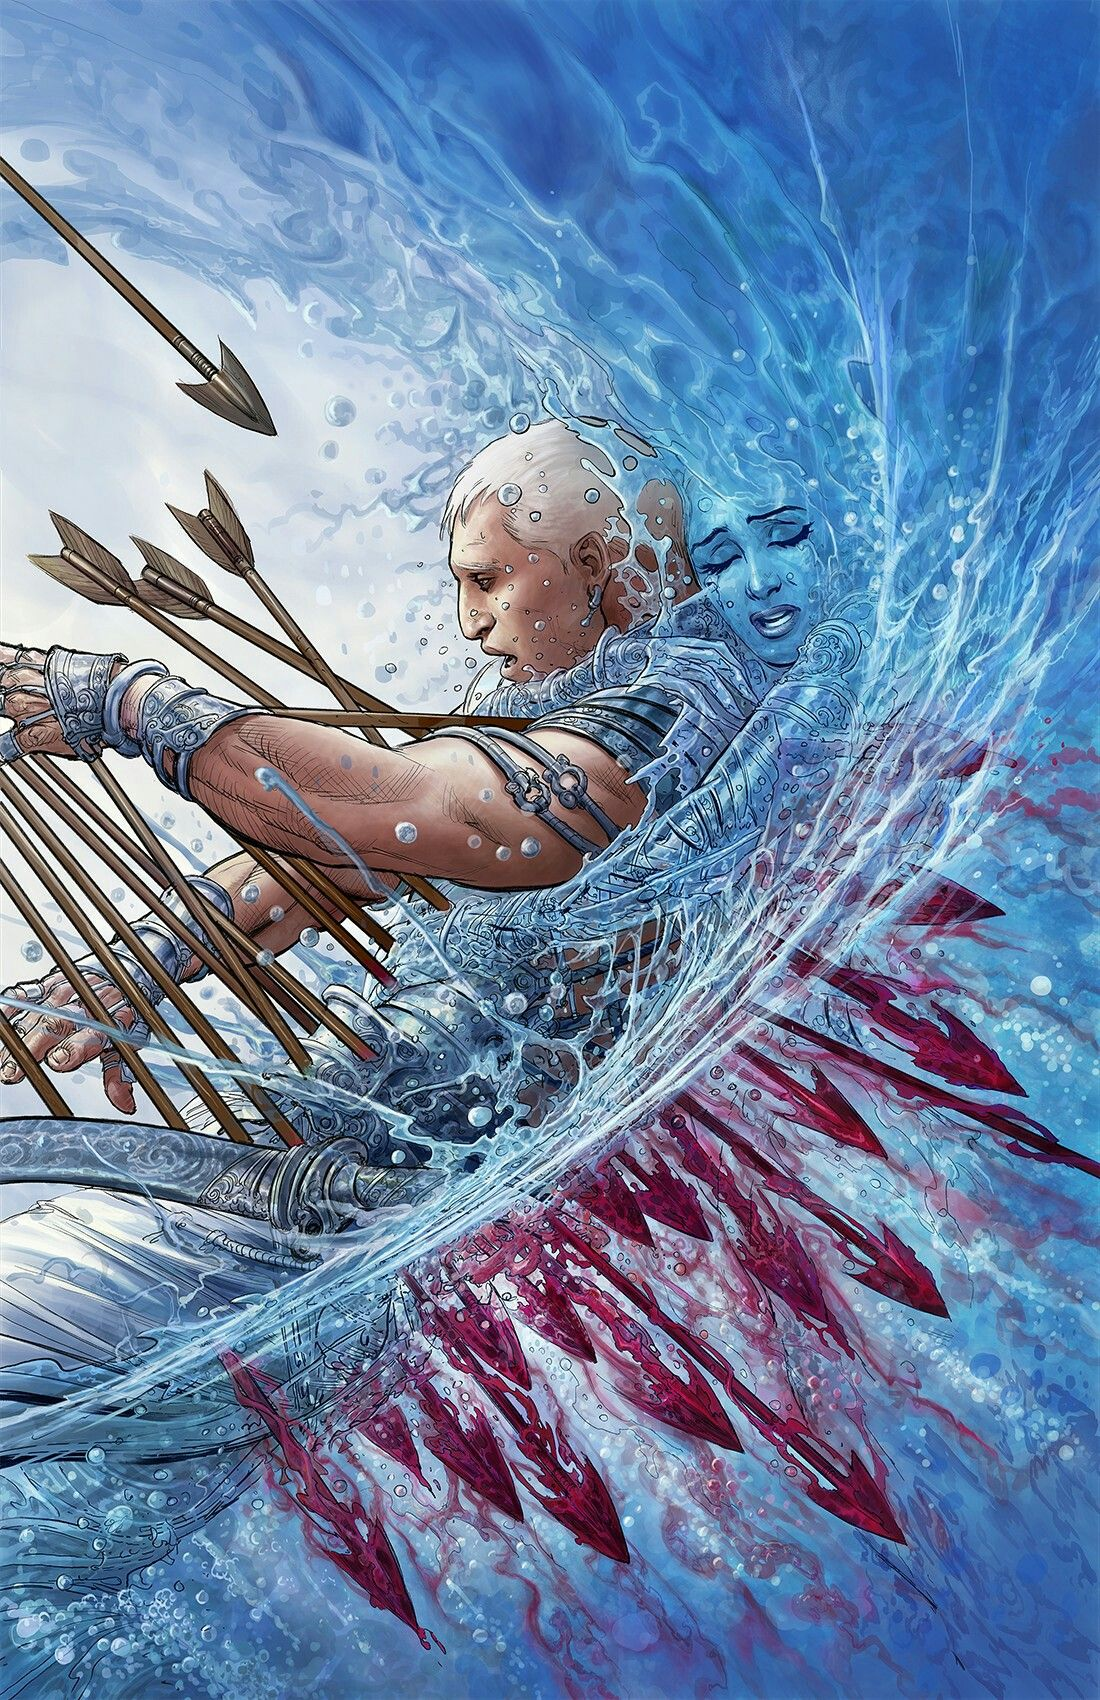 Bhishma Pitamah Epic Art Art Mythology Art